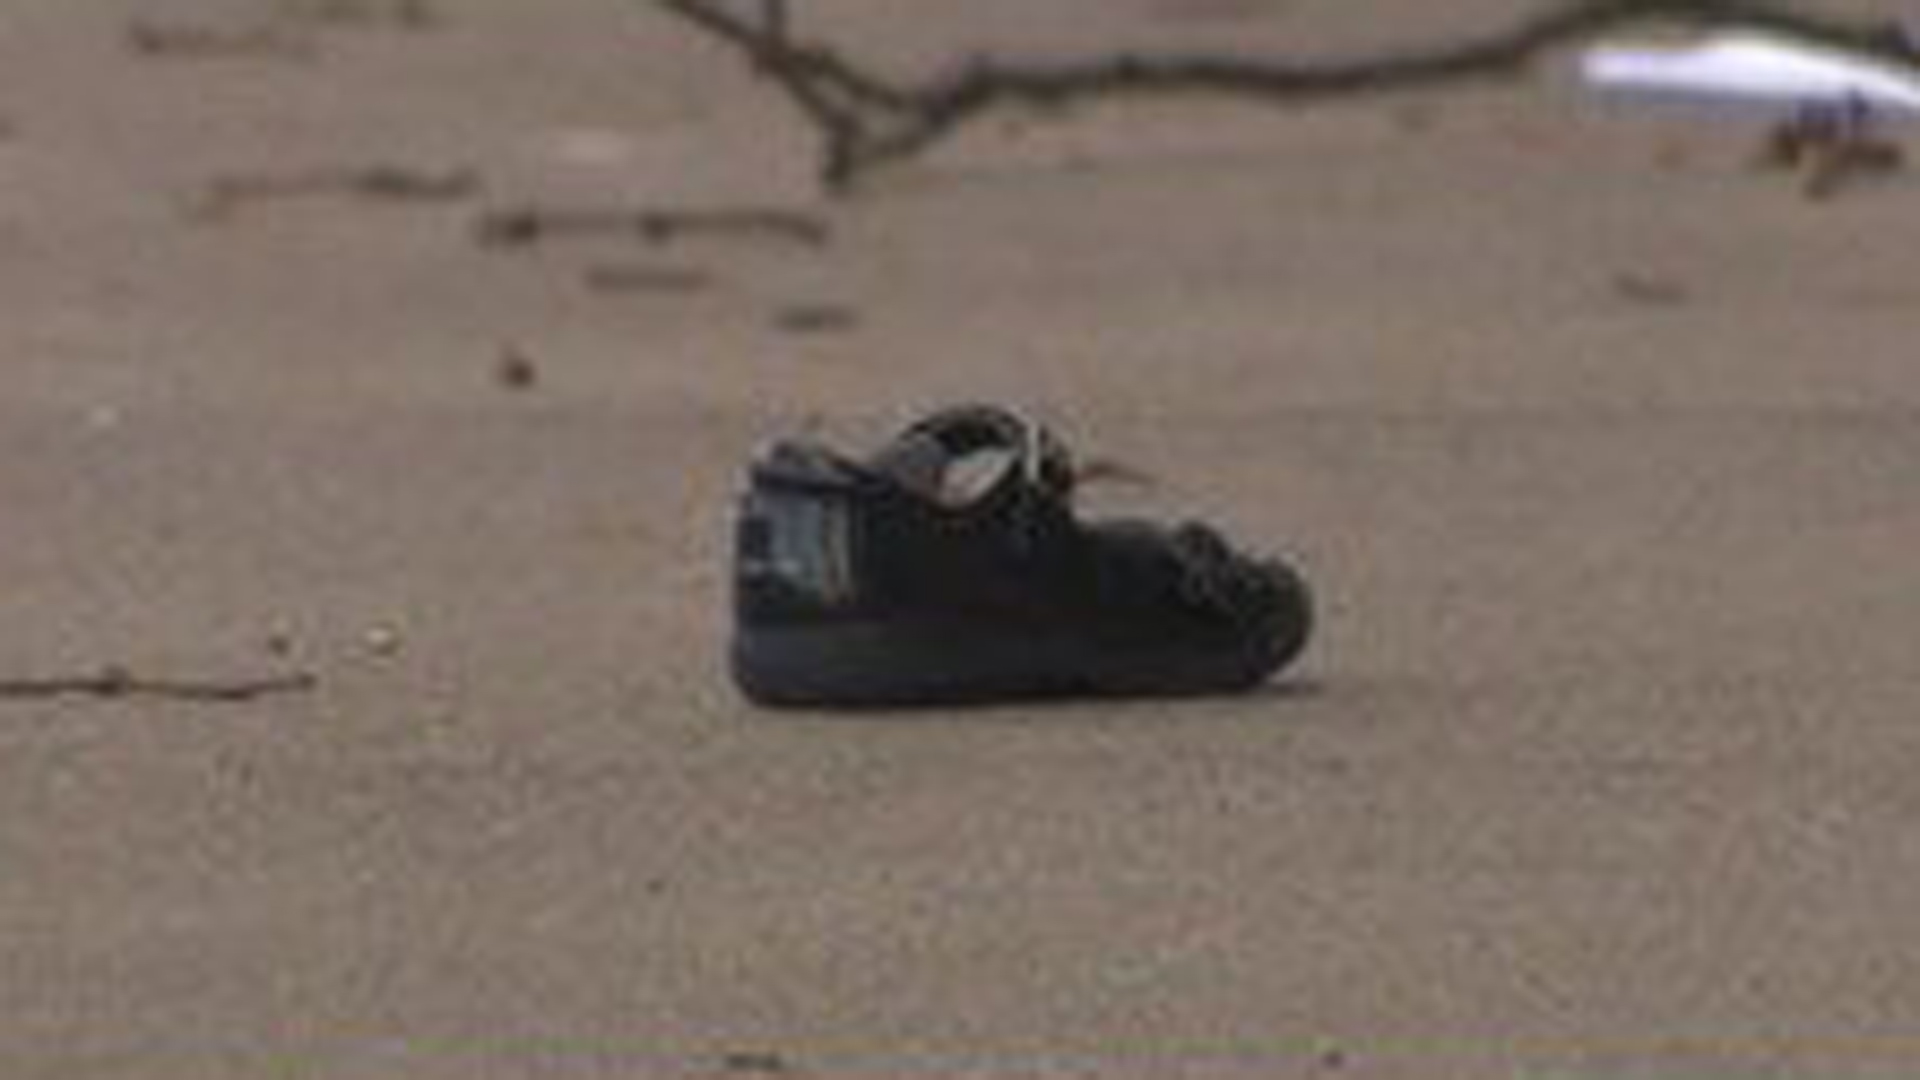 A child's shoe is seen at the scene where a woman and two young children were found dead on Dec. 25, 2019. (Credit: WBZ via CNN)